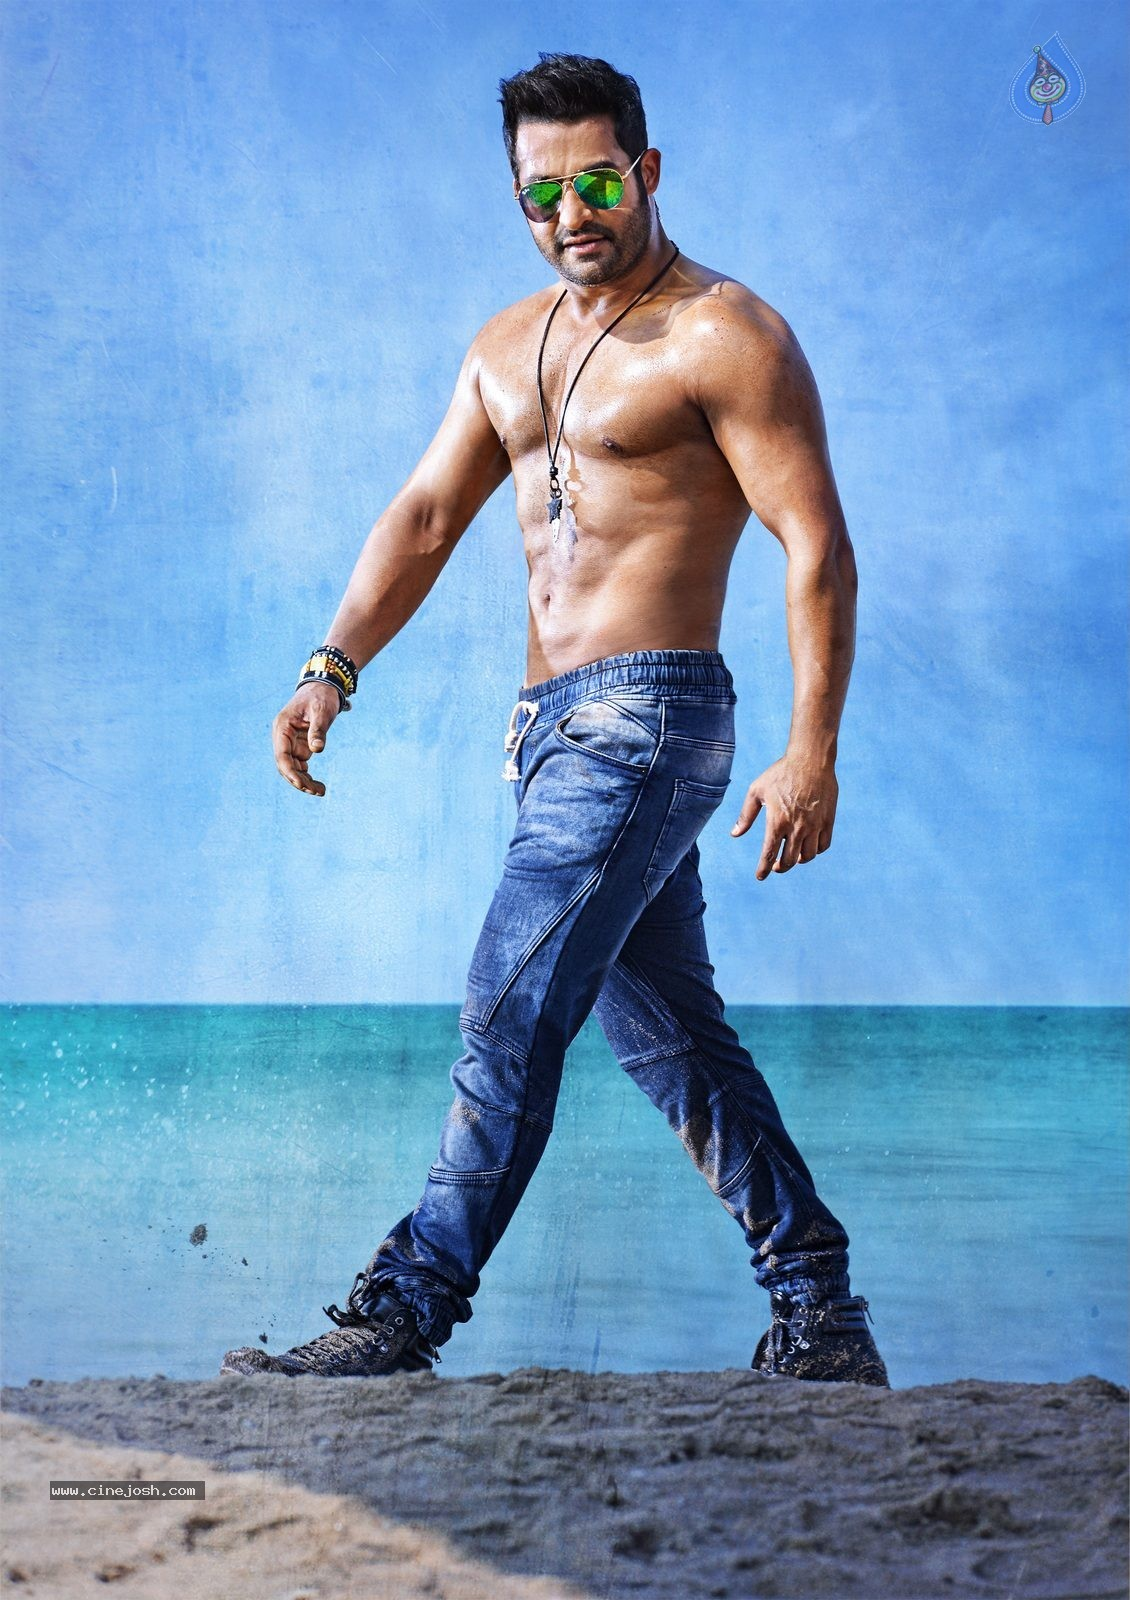 1st look posters of ntrs temper suryas 24 and masss please log in or register to add a comment altavistaventures Gallery